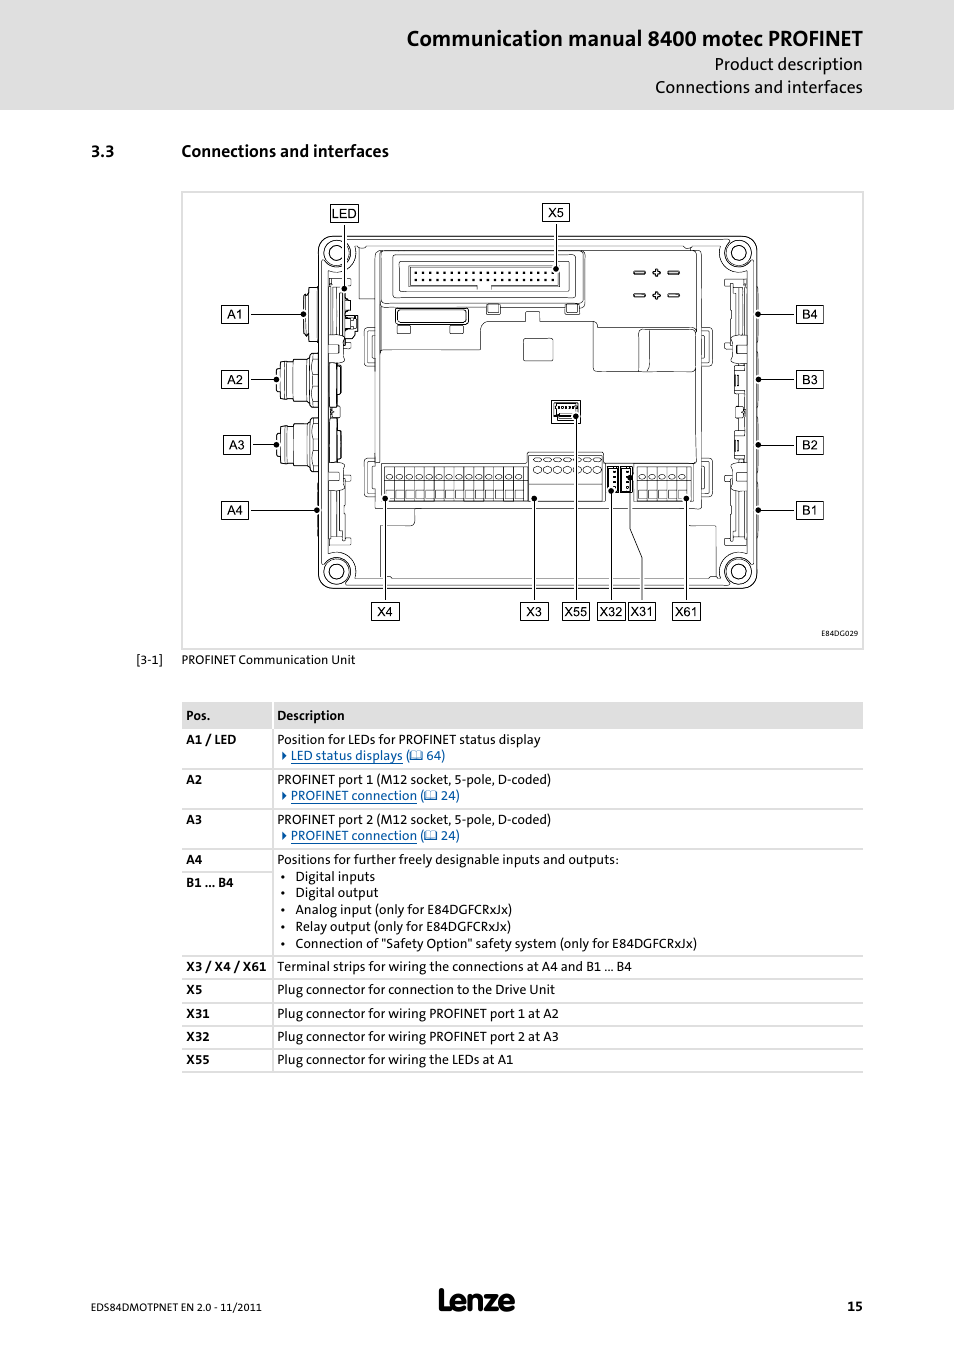 3 connections and interfaces, Connections and interfaces, Communication  manual 8400 motec profinet | Lenze E84DGFCR User Manual | Page 15 / 90